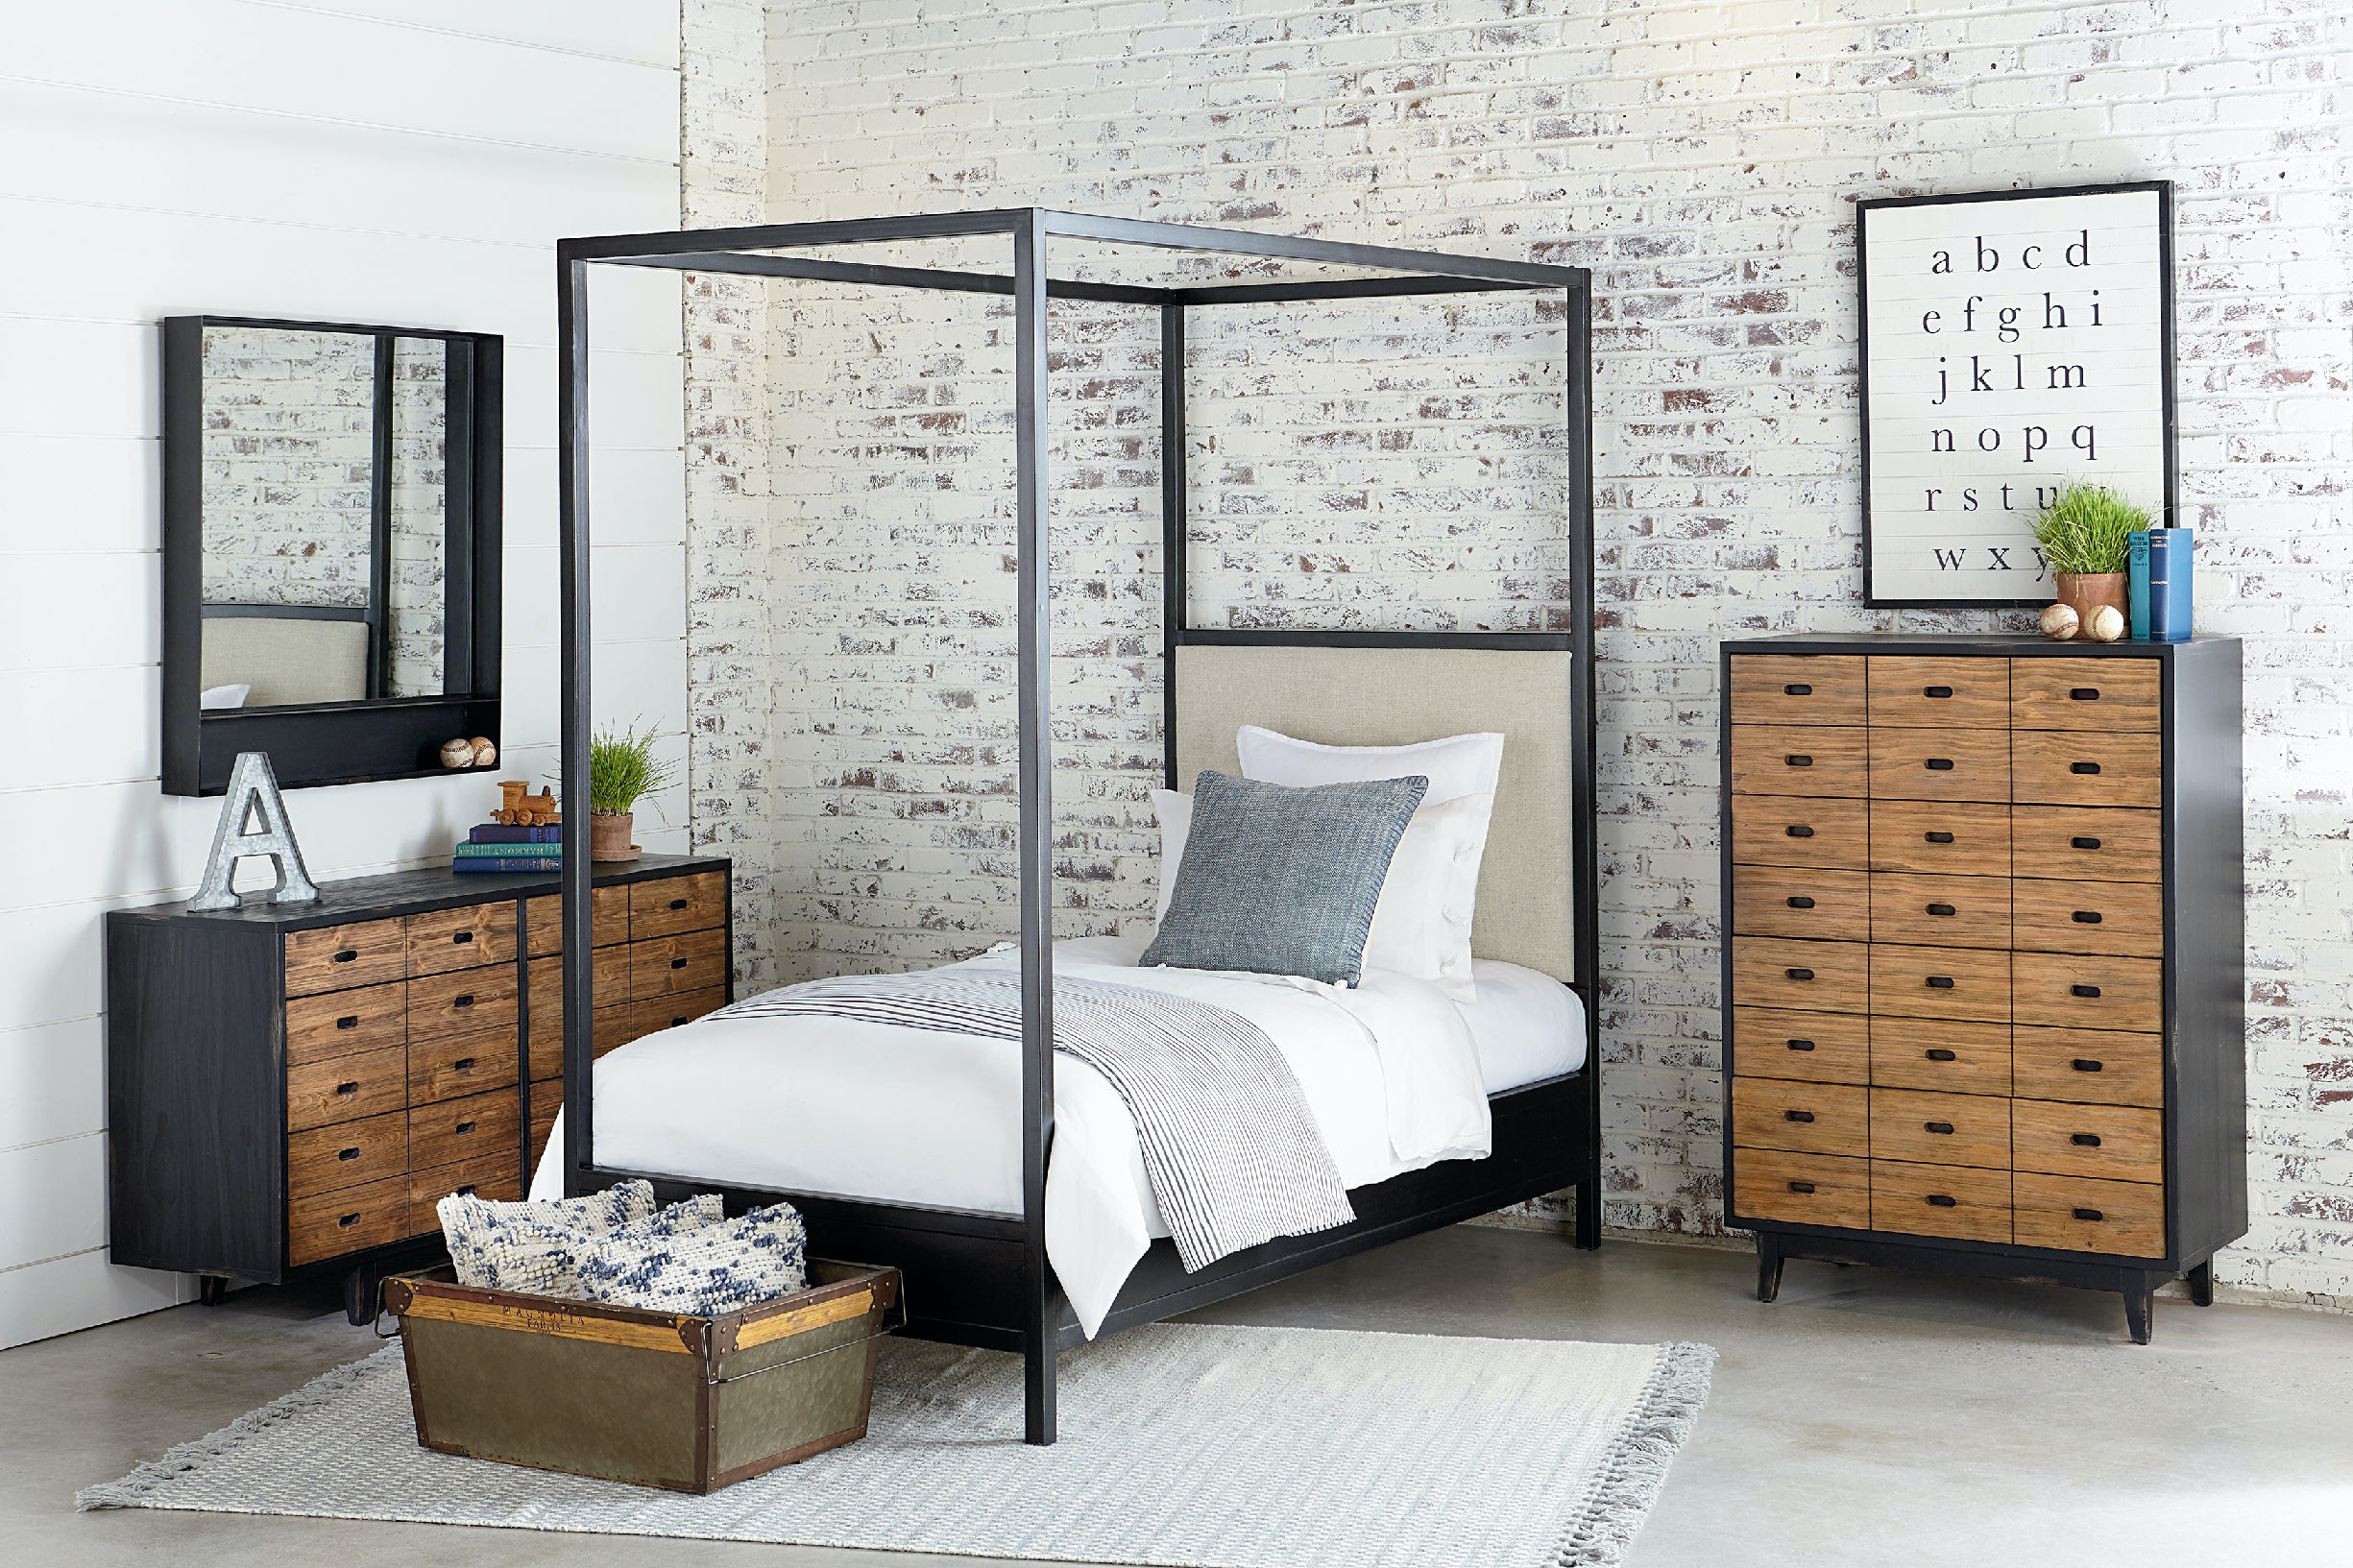 Magnolia Kids - Industrial Framework Upholstered Panel Canopy Bed - TWIN KT66399 : canopy twin bed - memphite.com